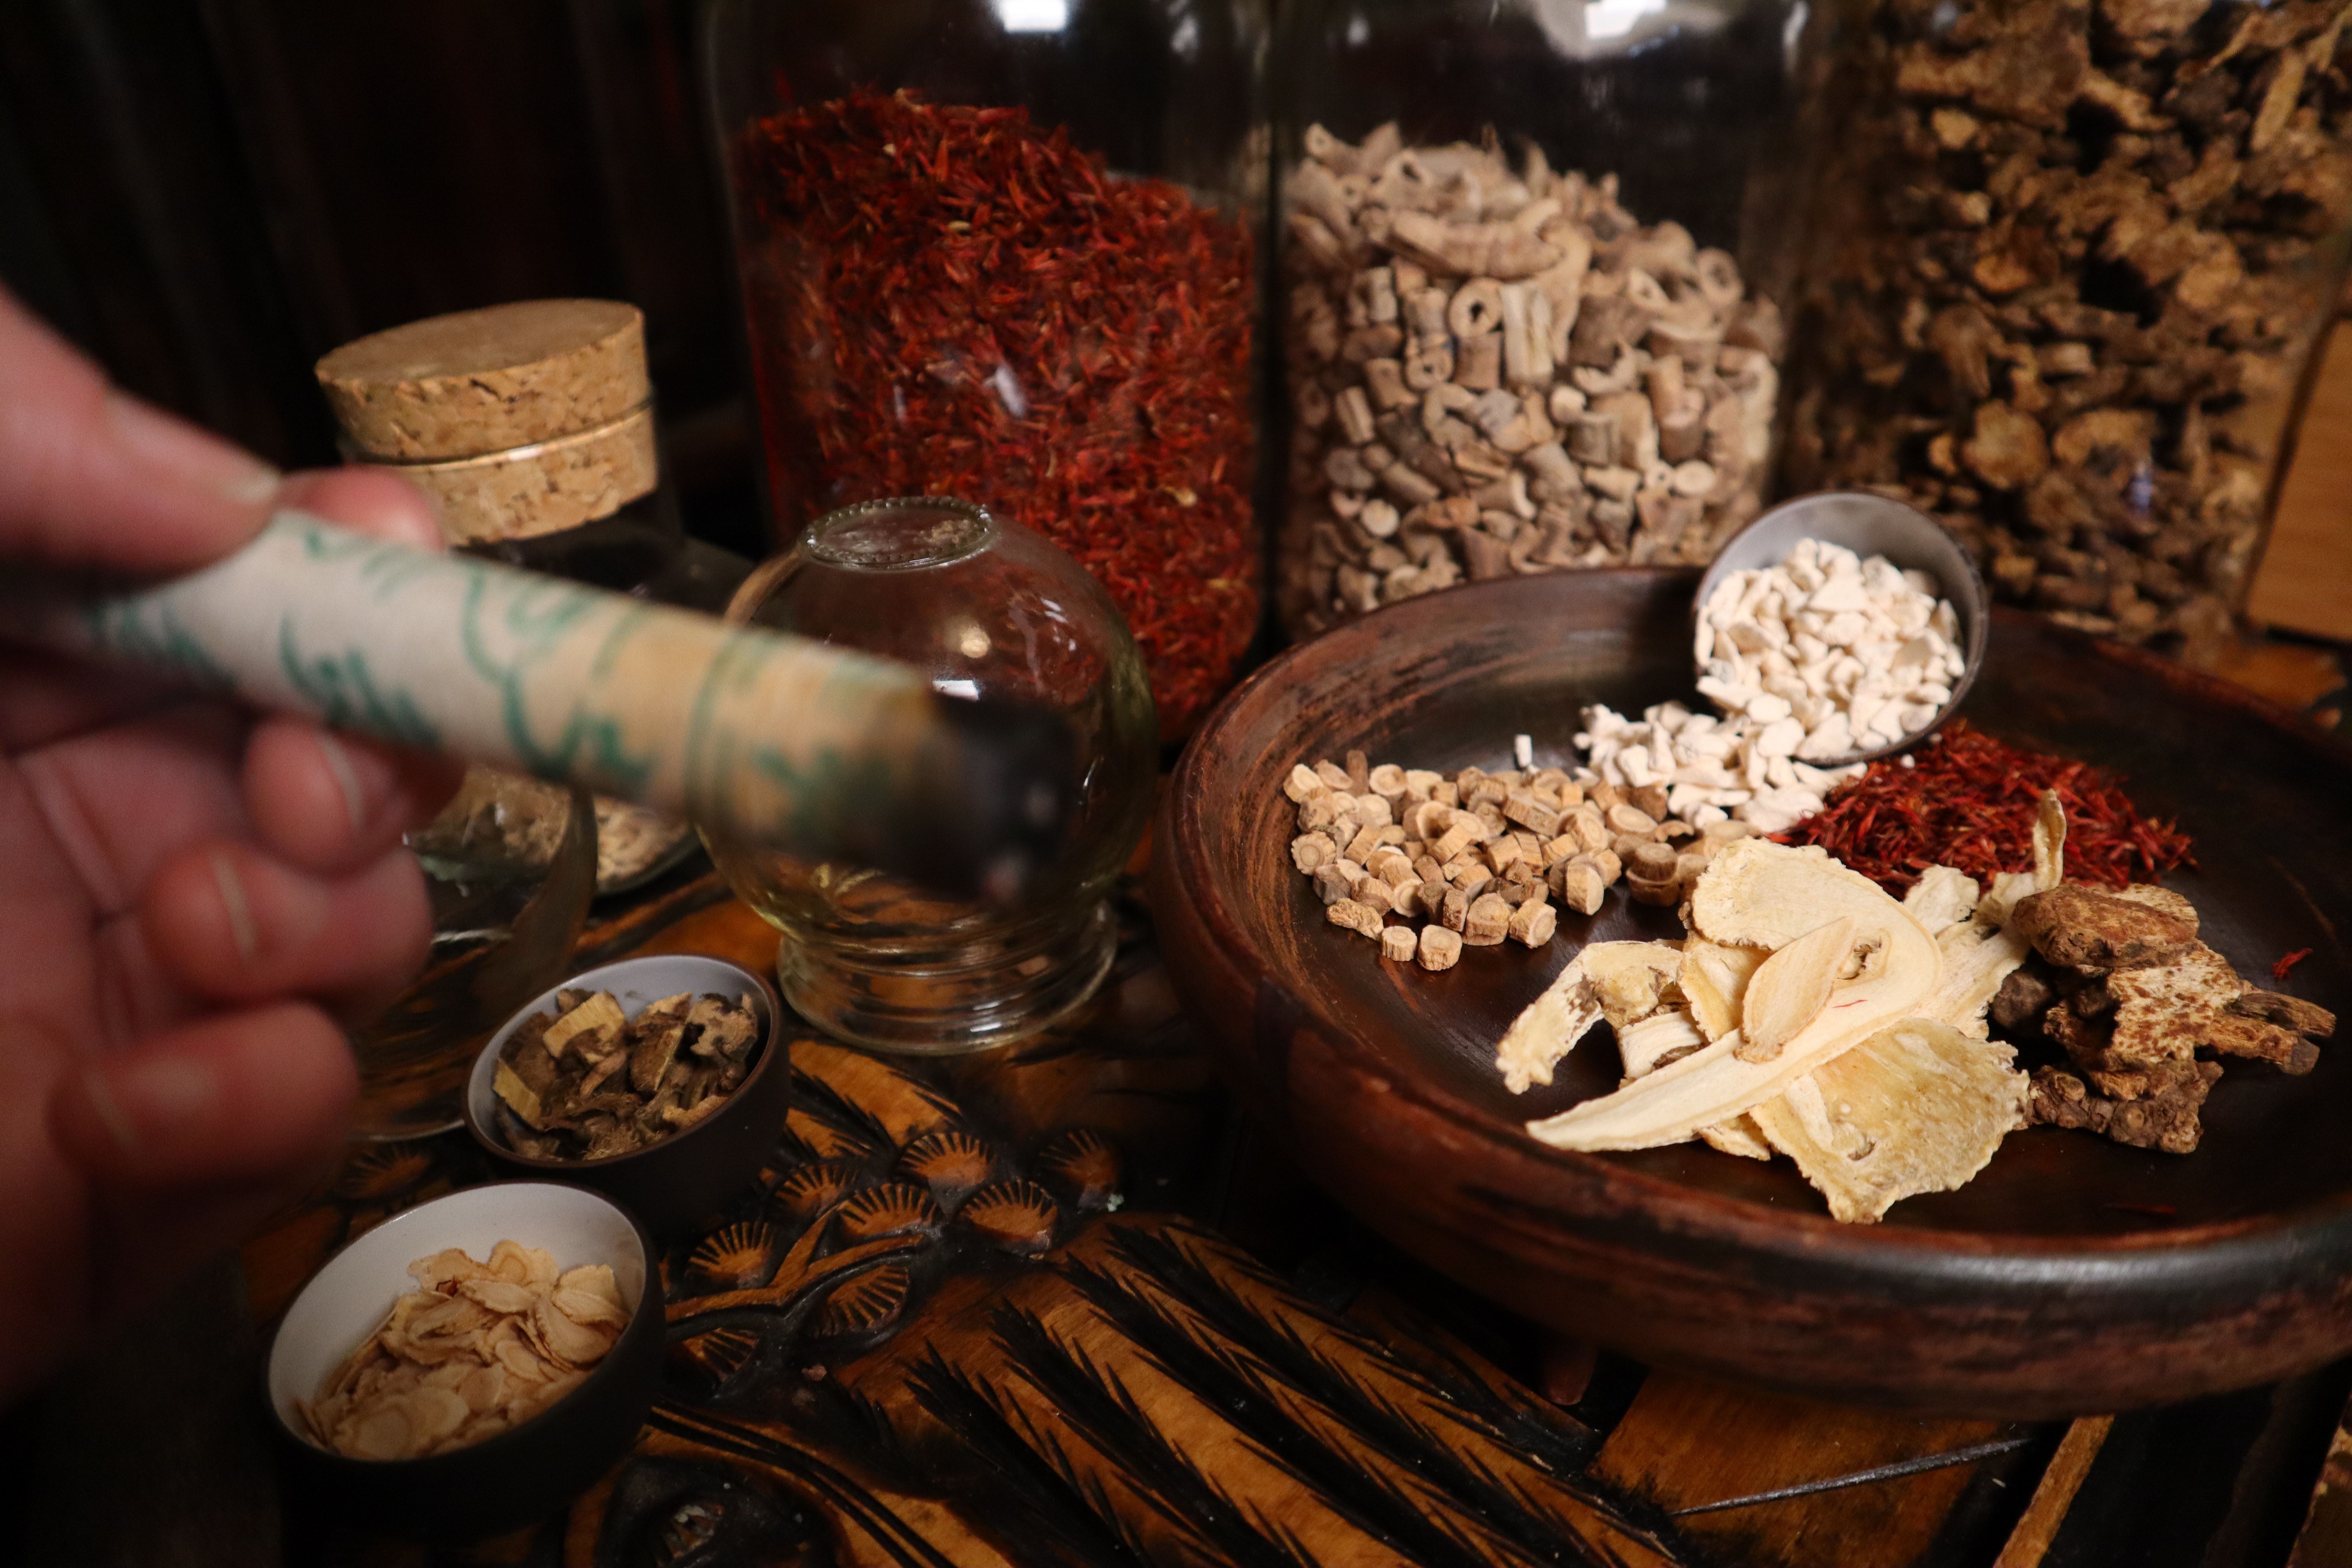 chinese-medicine-chinese-medicine-podcast-cupping-herbal-2464062